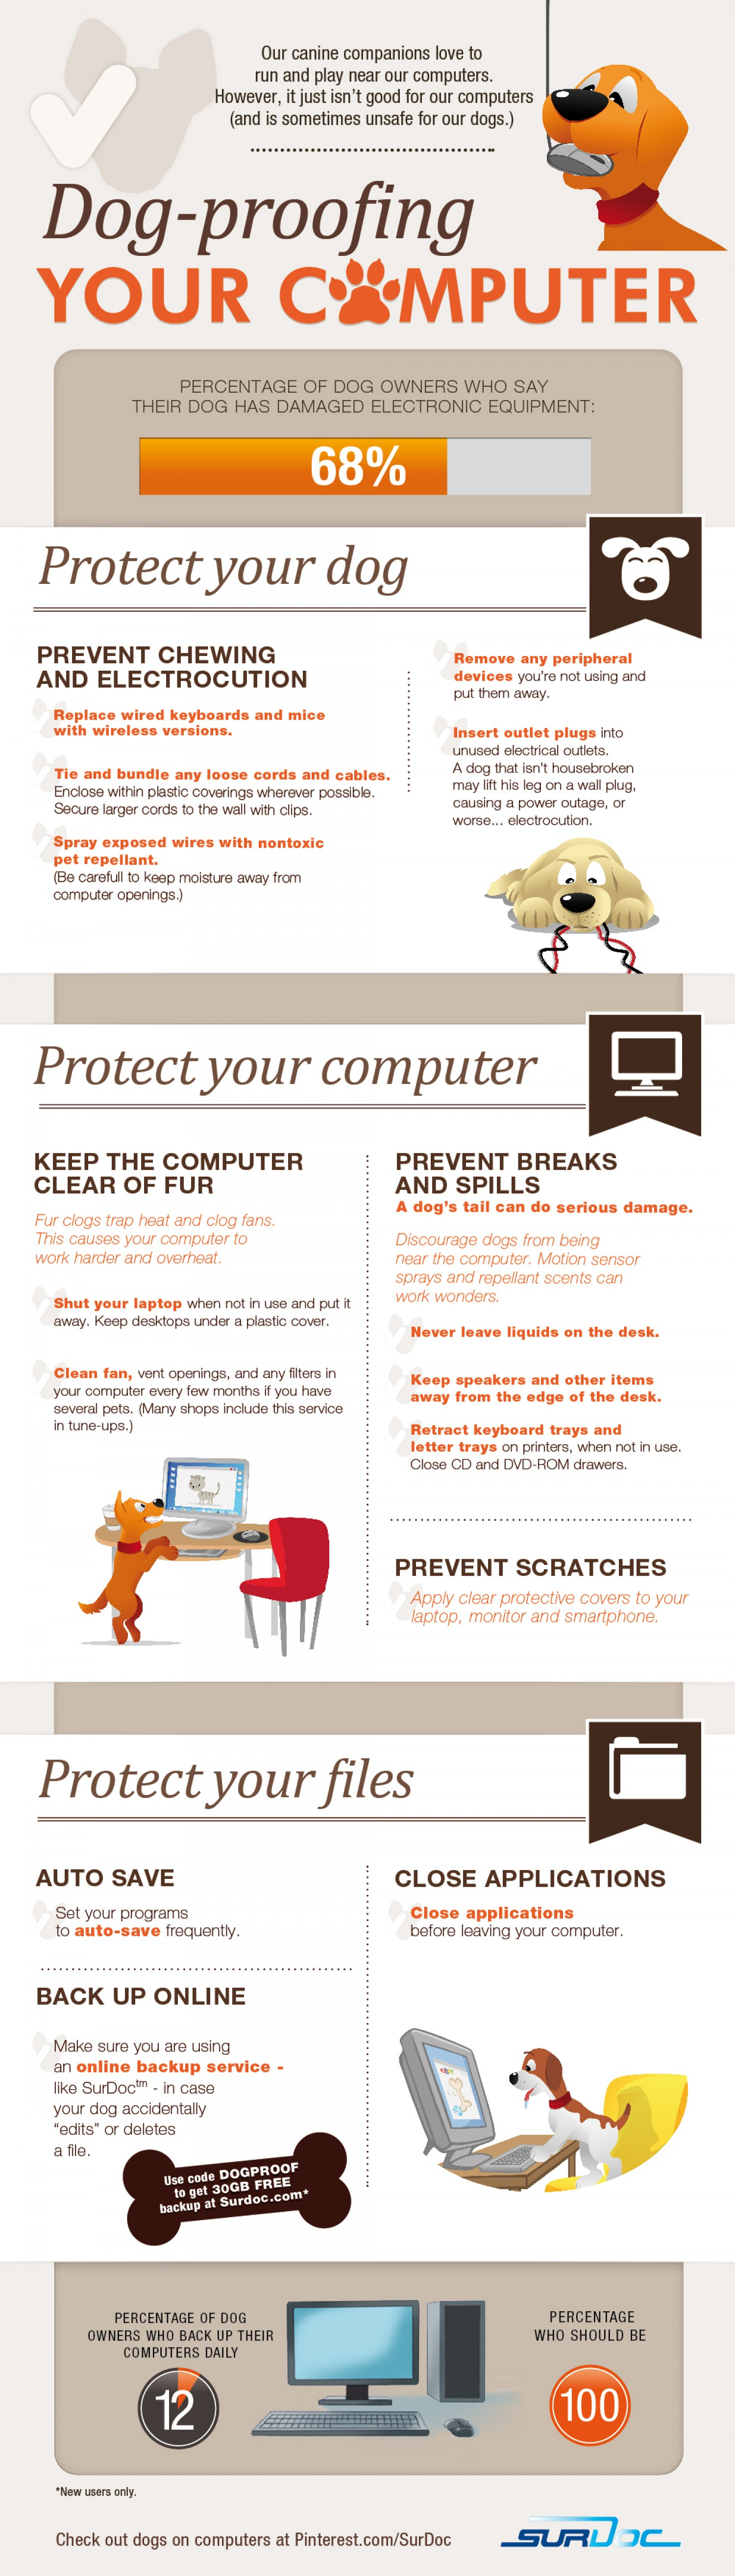 Dog-Proofing Your Computer